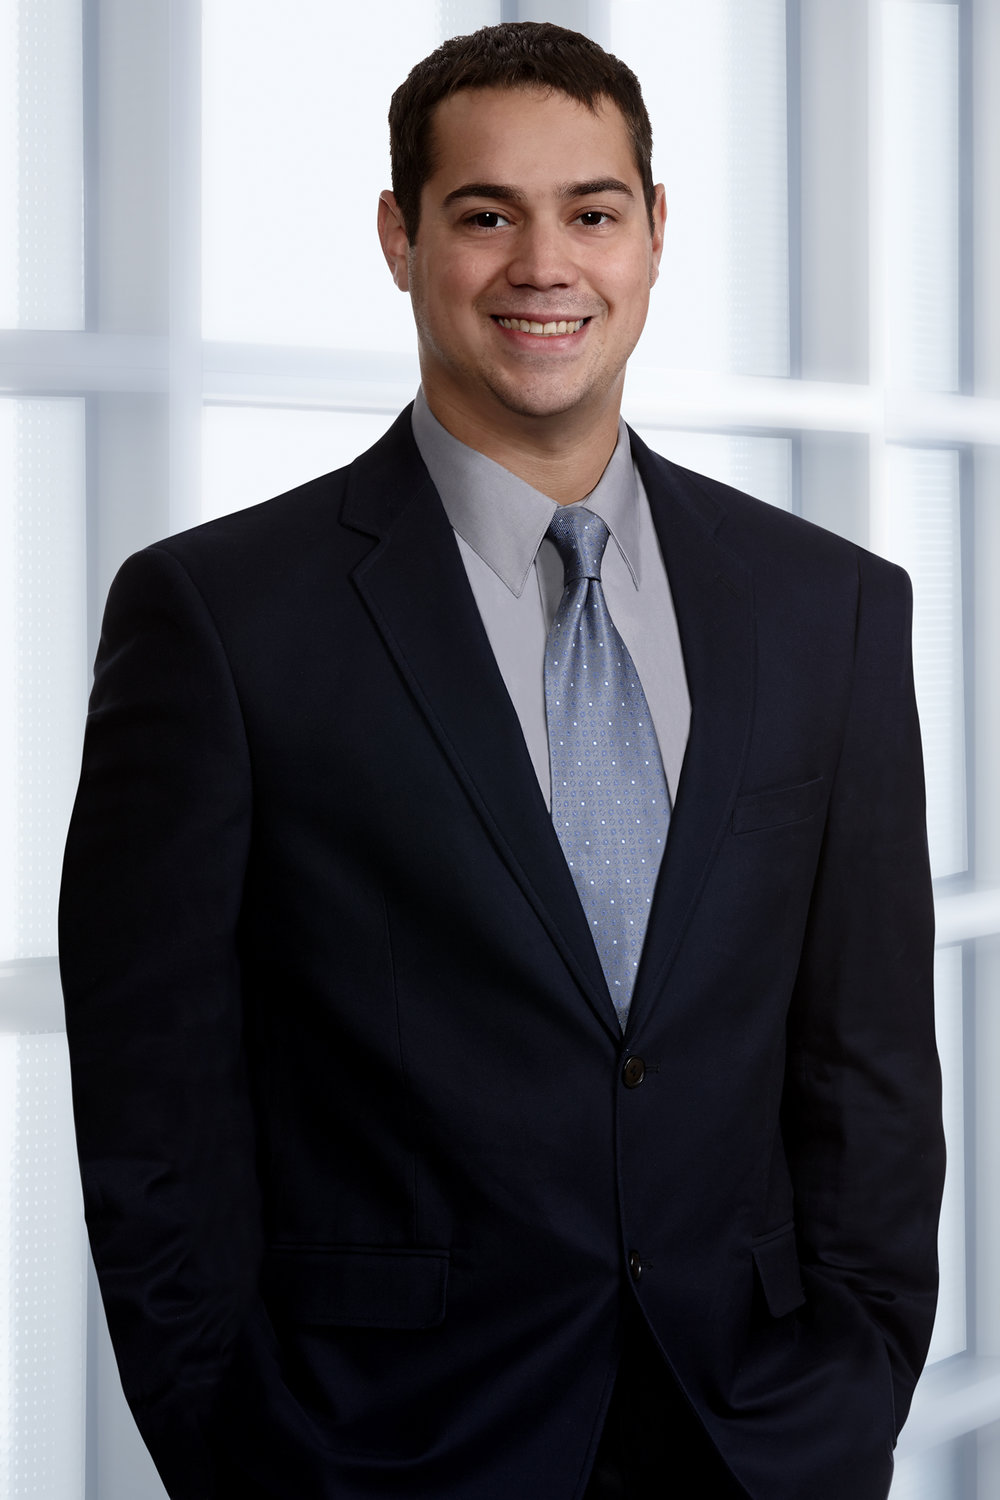 Nick Rebeiro   Secretary   Nicholas has been a part of the Rizzo Team for more than 7 years. Nick worked at Rizzo while earning his Bachelor's degree in construction management at Central Connecticut State University.